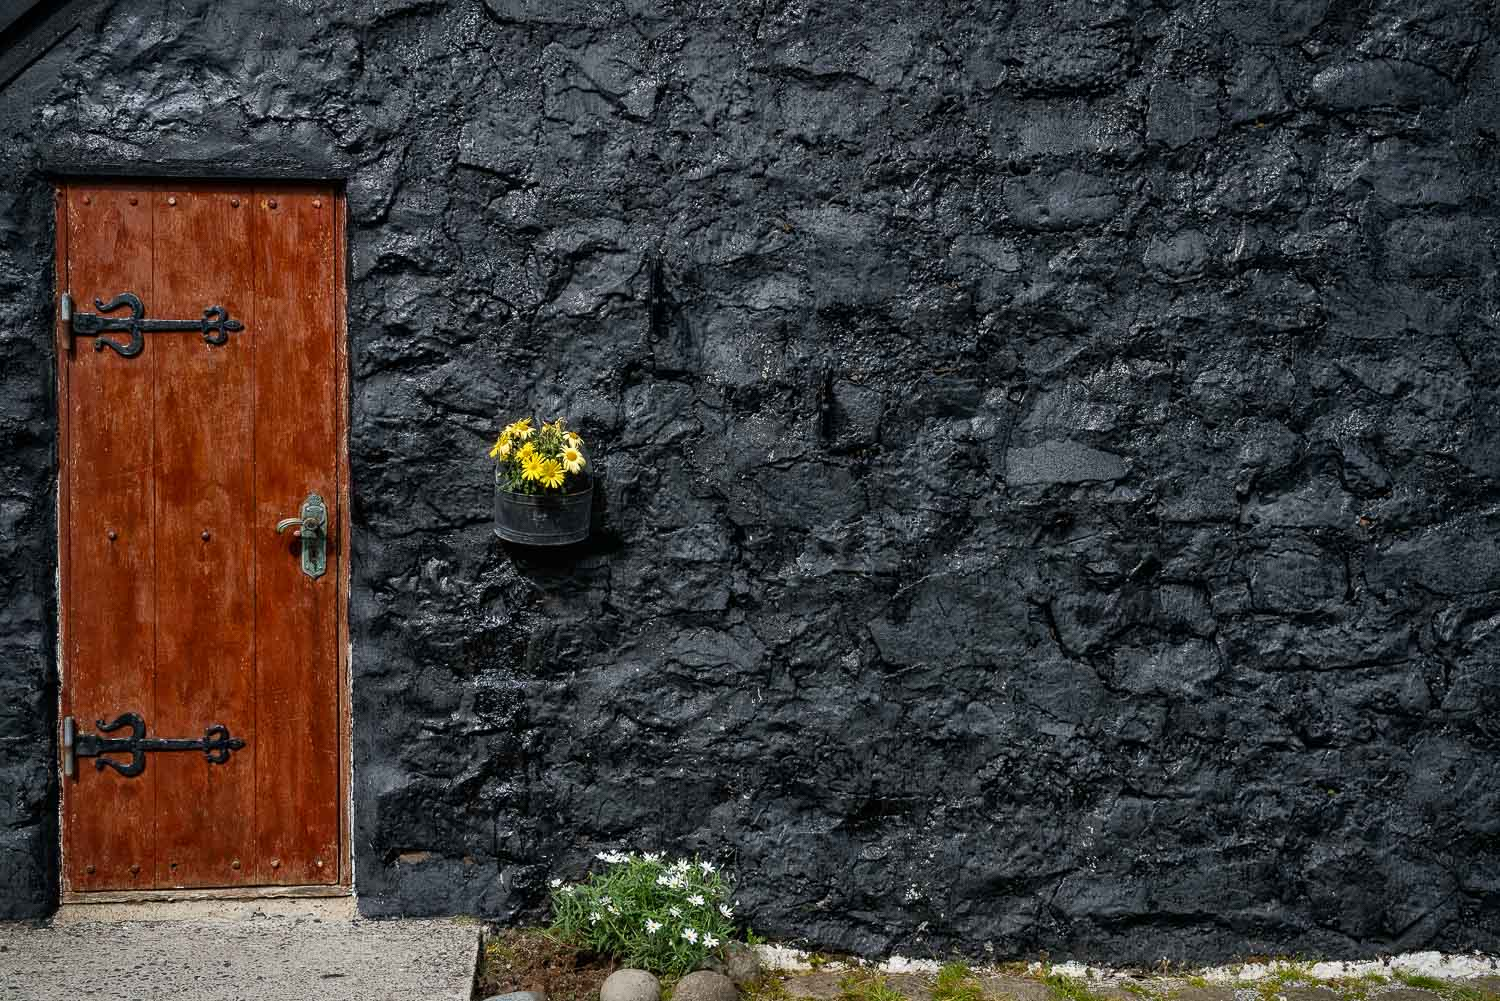 The    front door    and black tar wall of a traditional turf roof house in the    Faroe Islands   .